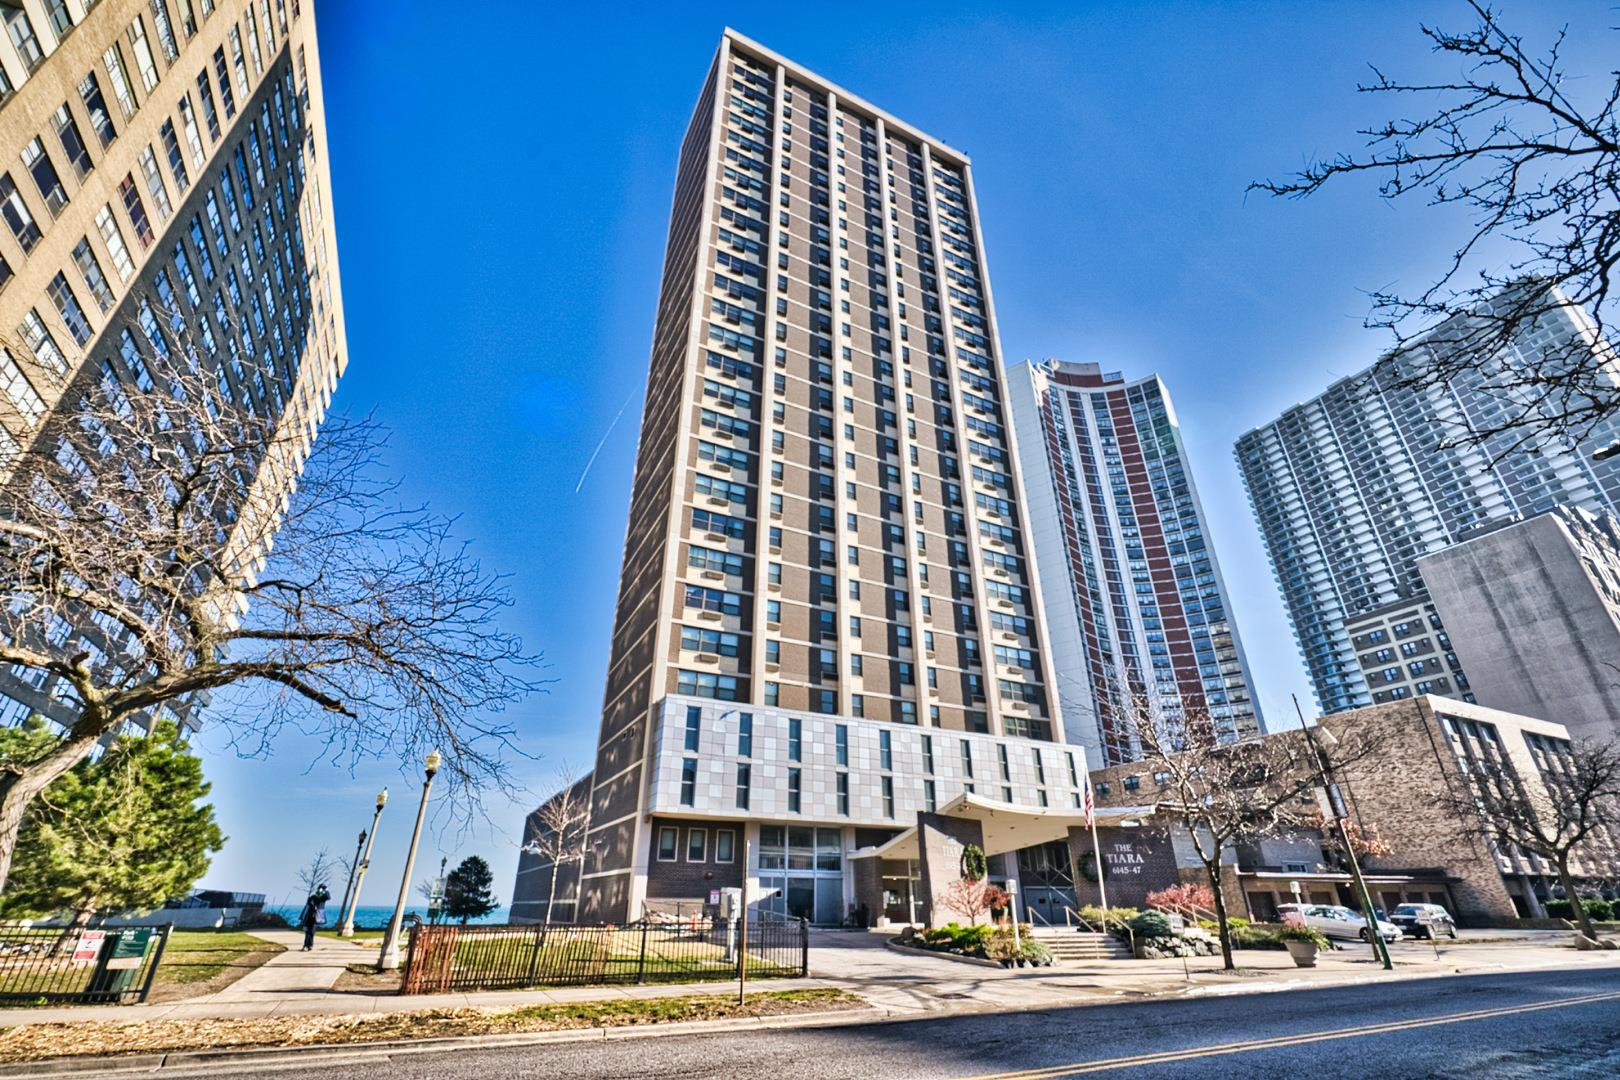 6147 N SHERIDAN Road #6C, Chicago, IL 60660 - #: 10954742